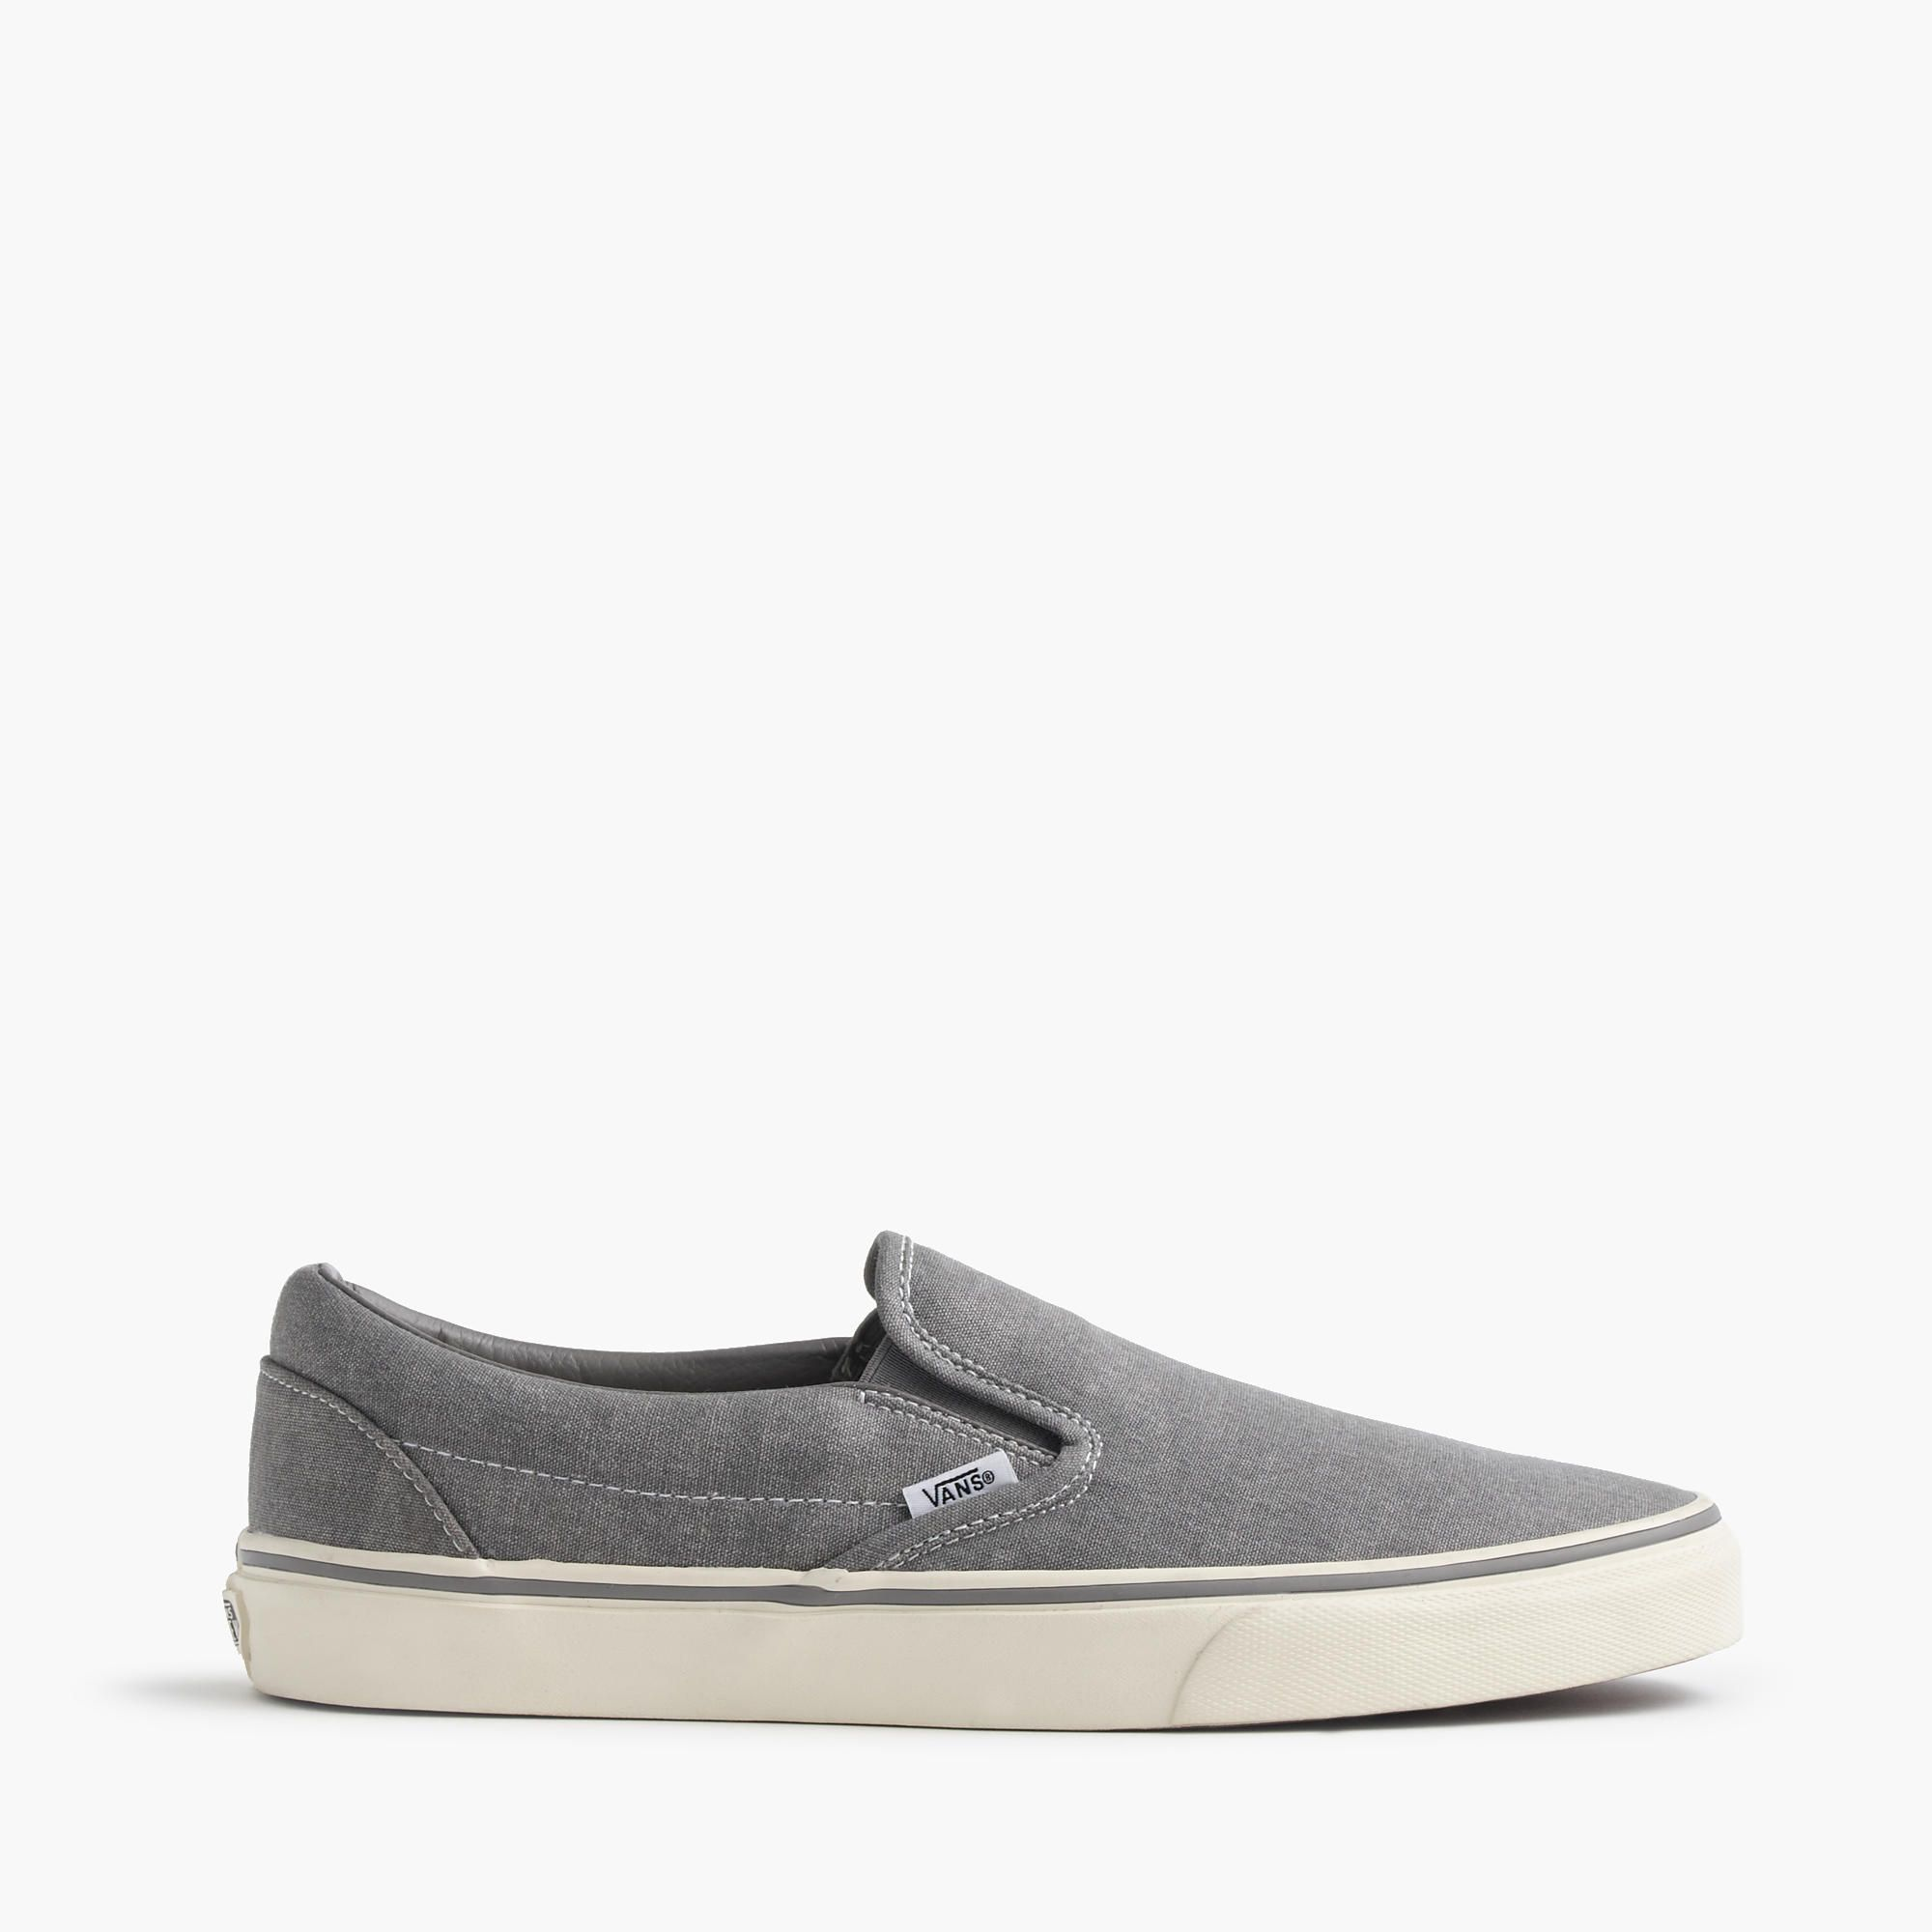 Shop the Vans For J.Crew Washed Canvas Classic Slip-On Sneakers at  JCrew.com and see our entire selection of Men's Sneakers.